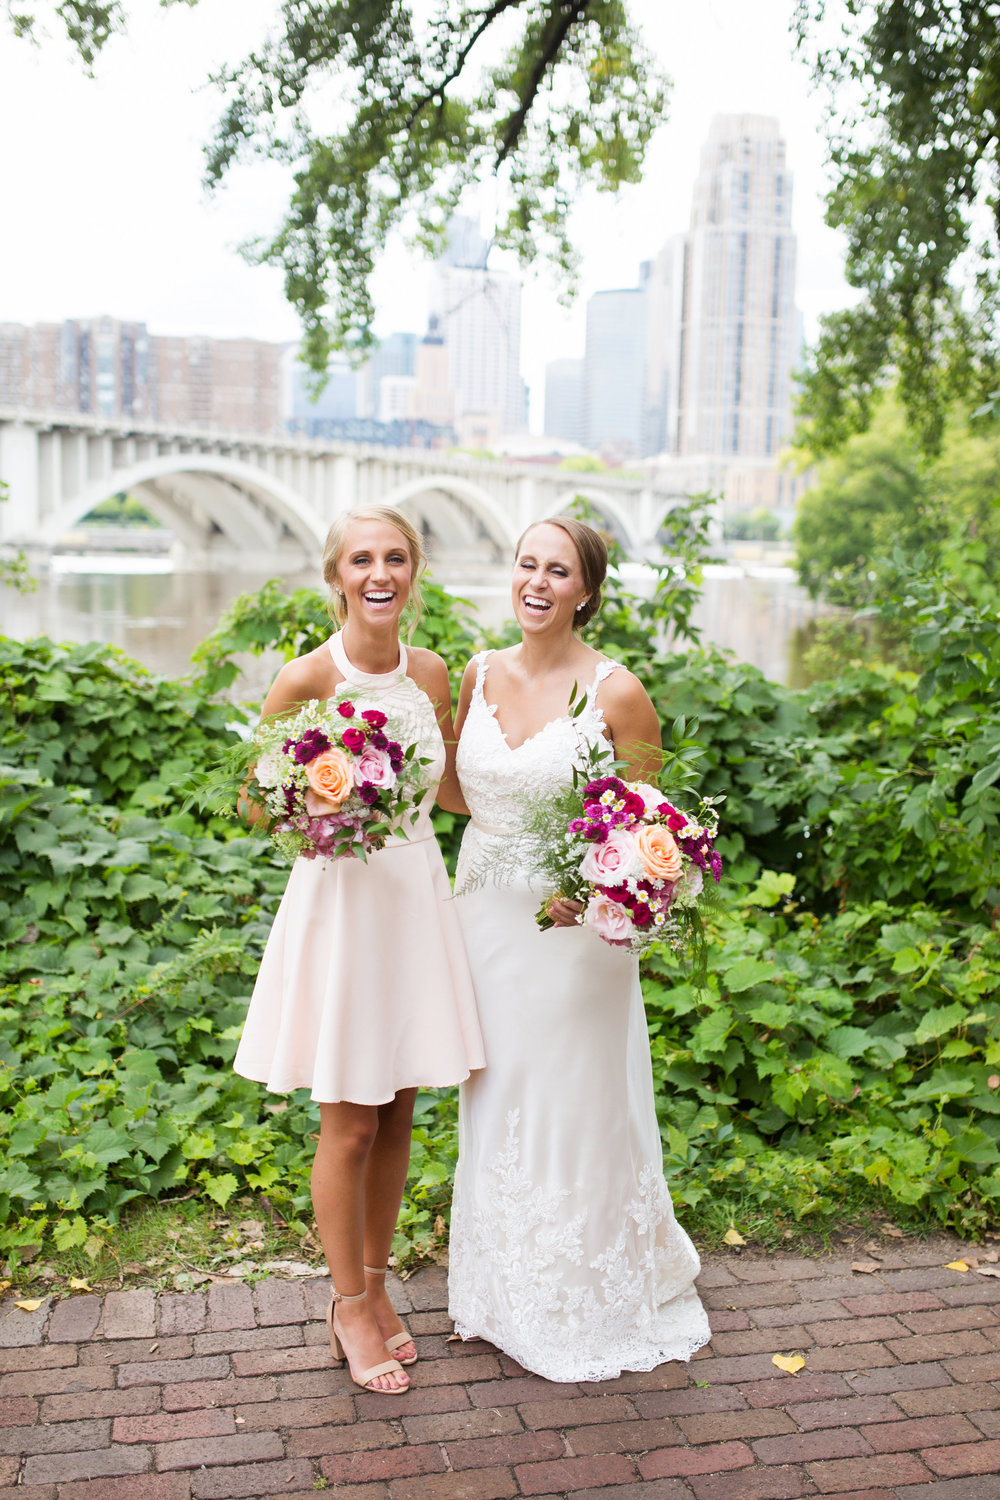 Kaylie + Travis | Sixpence Events wedding planner in the midwest | Studio KH photography | sisters bridal portrait